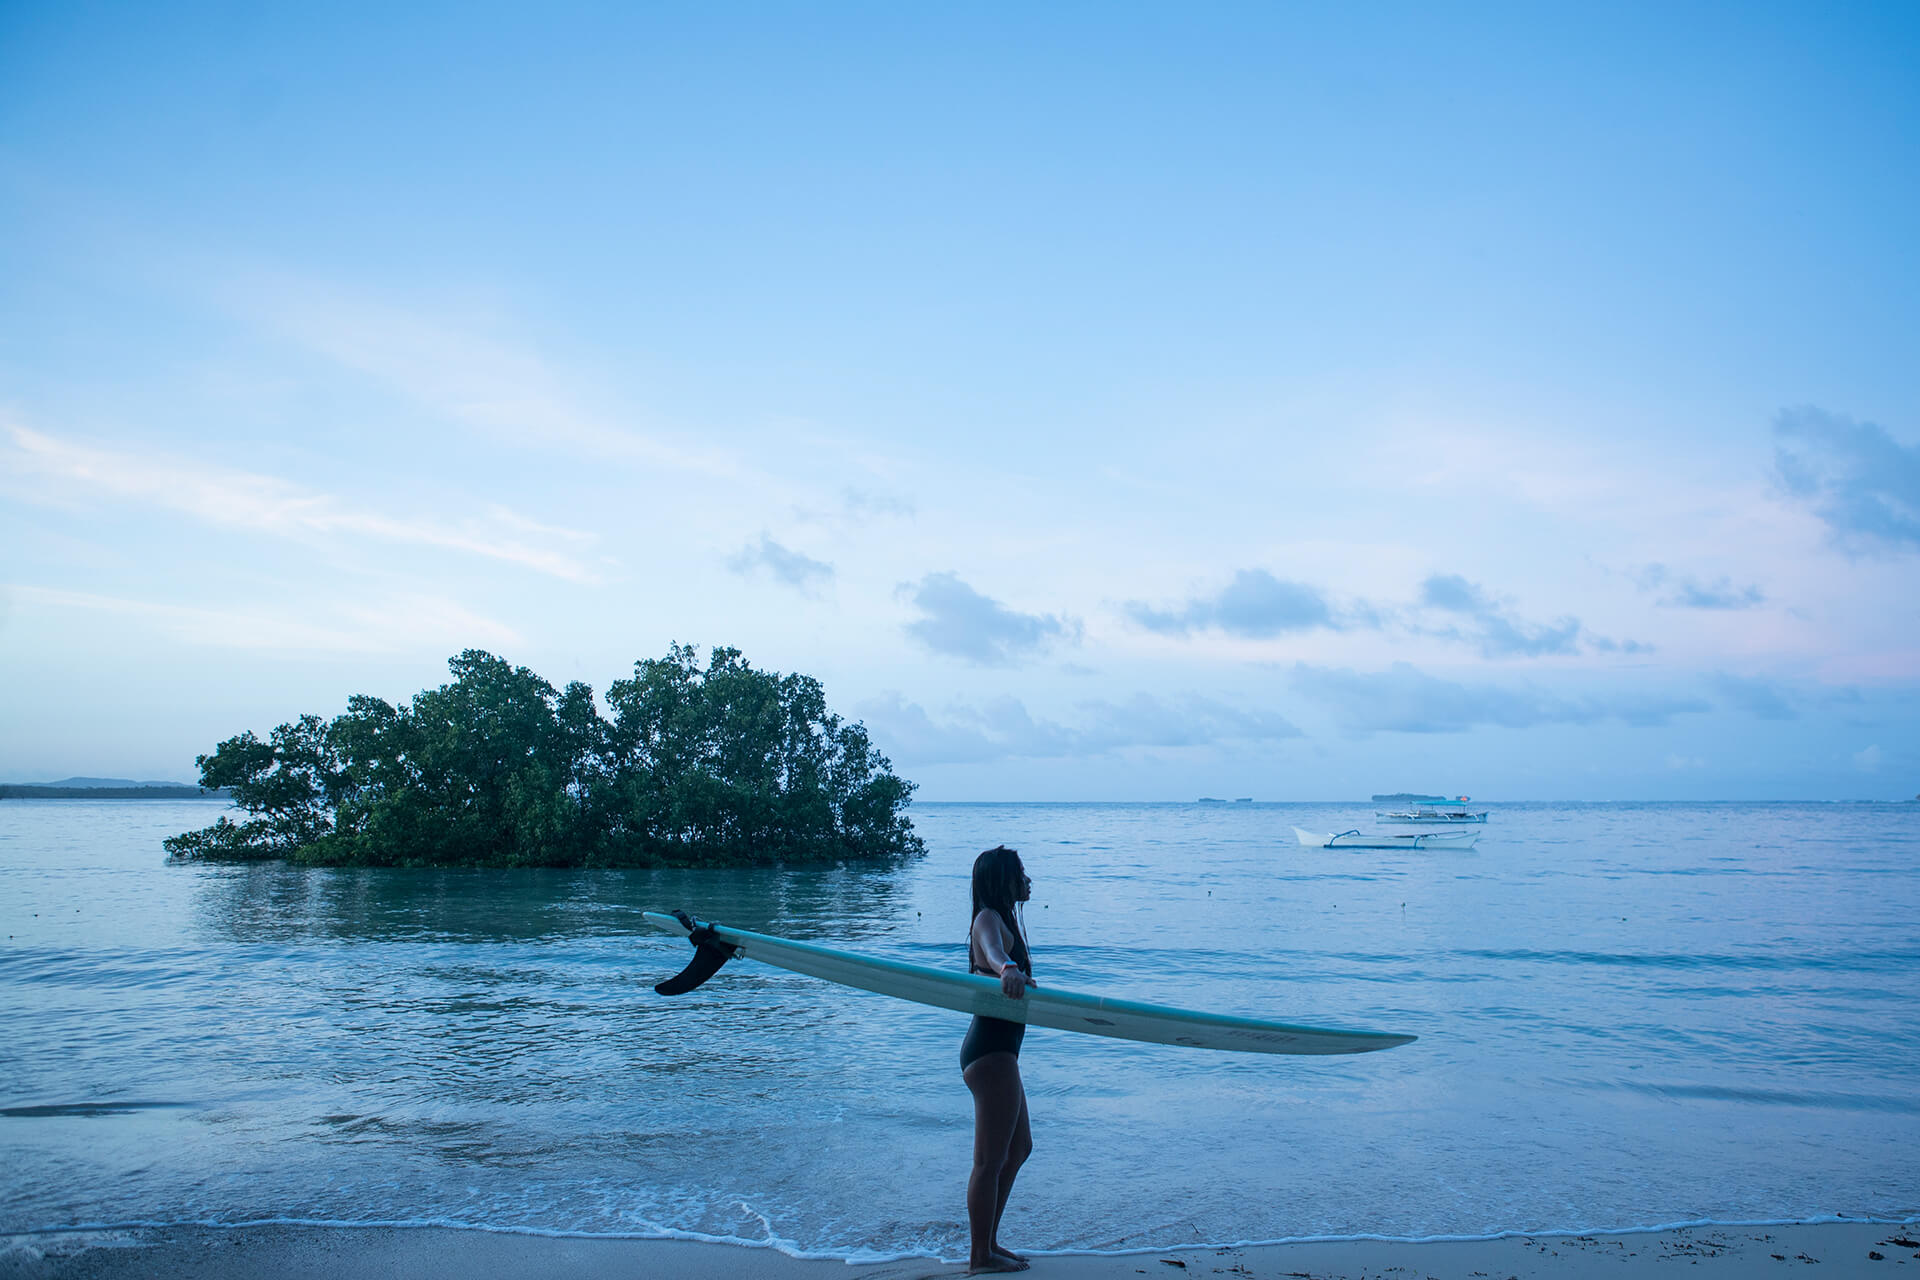 The Department of Tourism and Globe Telecom have joined forces to urge Siargao onto the path of environmental sustainability.